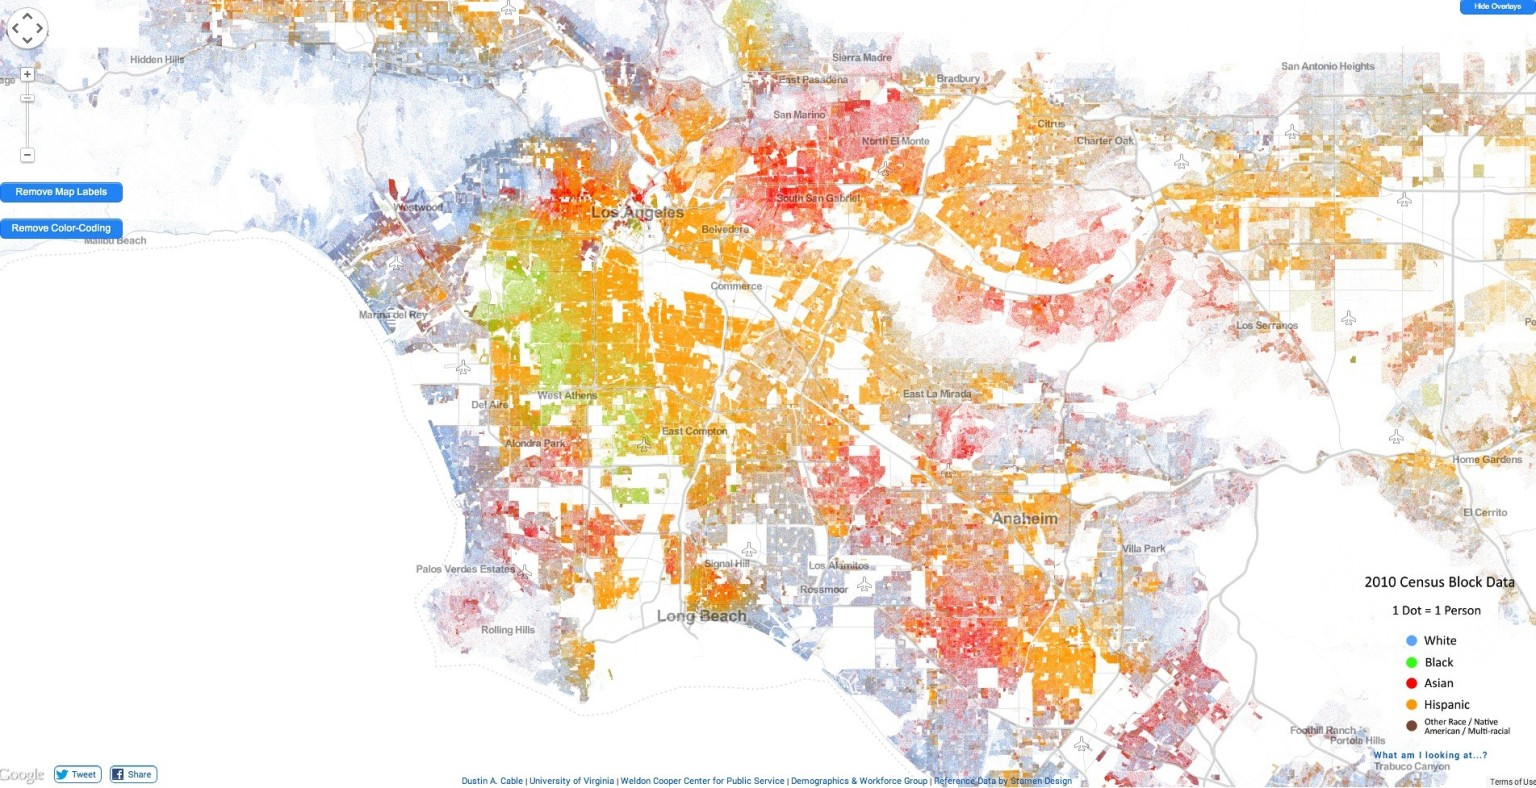 Racial Dot Map In La Highlights Segregation By